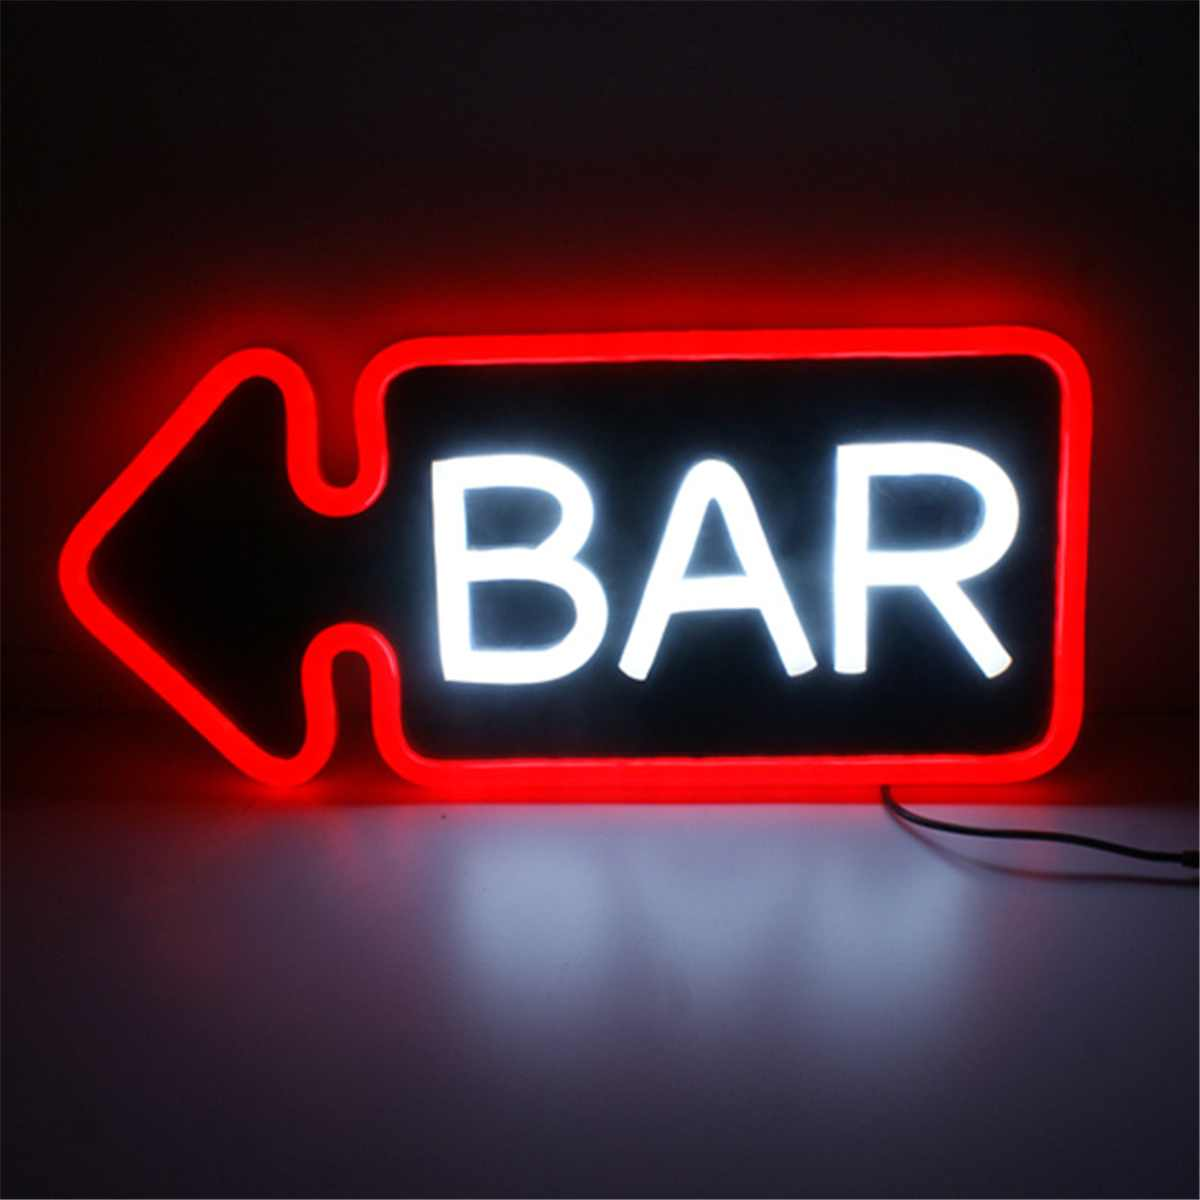 PVC BAR Neon Sign LED Light Handmade Visual Artwork Bar Club Wall Light Lamp Decoration Lighting Neon Bulbs Board 48*25*3cm image